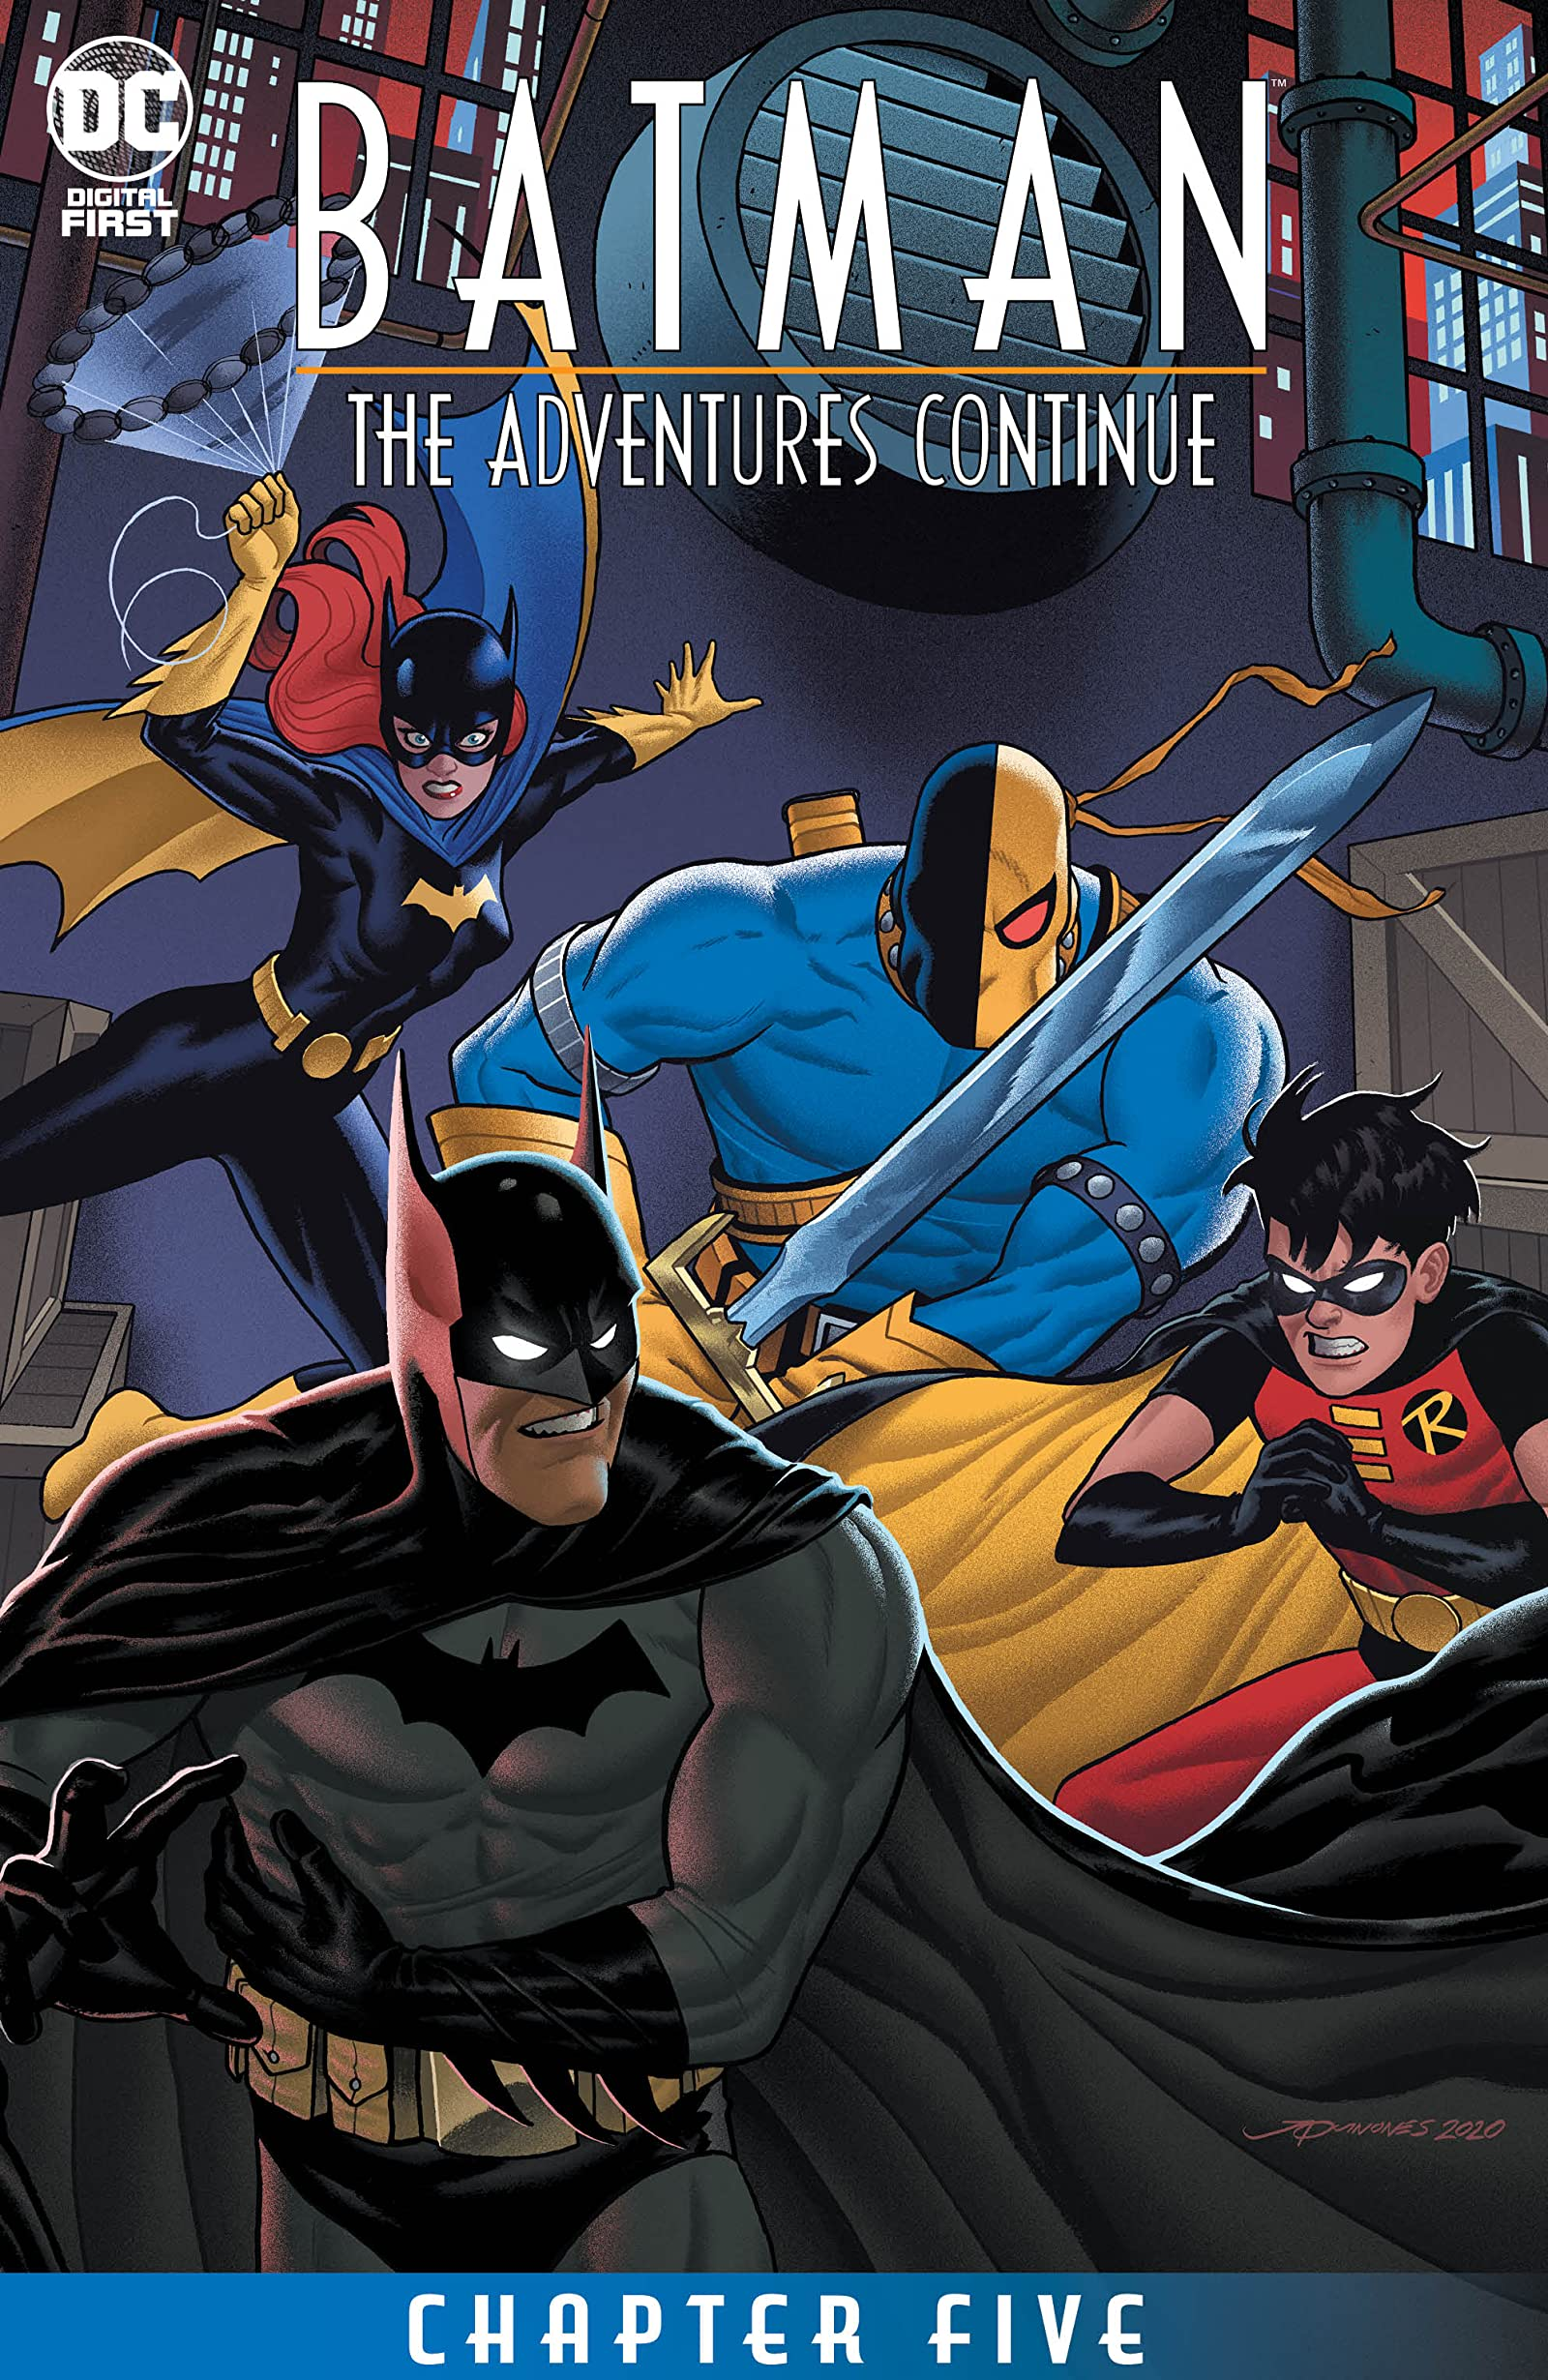 Batman: The Adventures Continue Vol 1 5 (Digital)